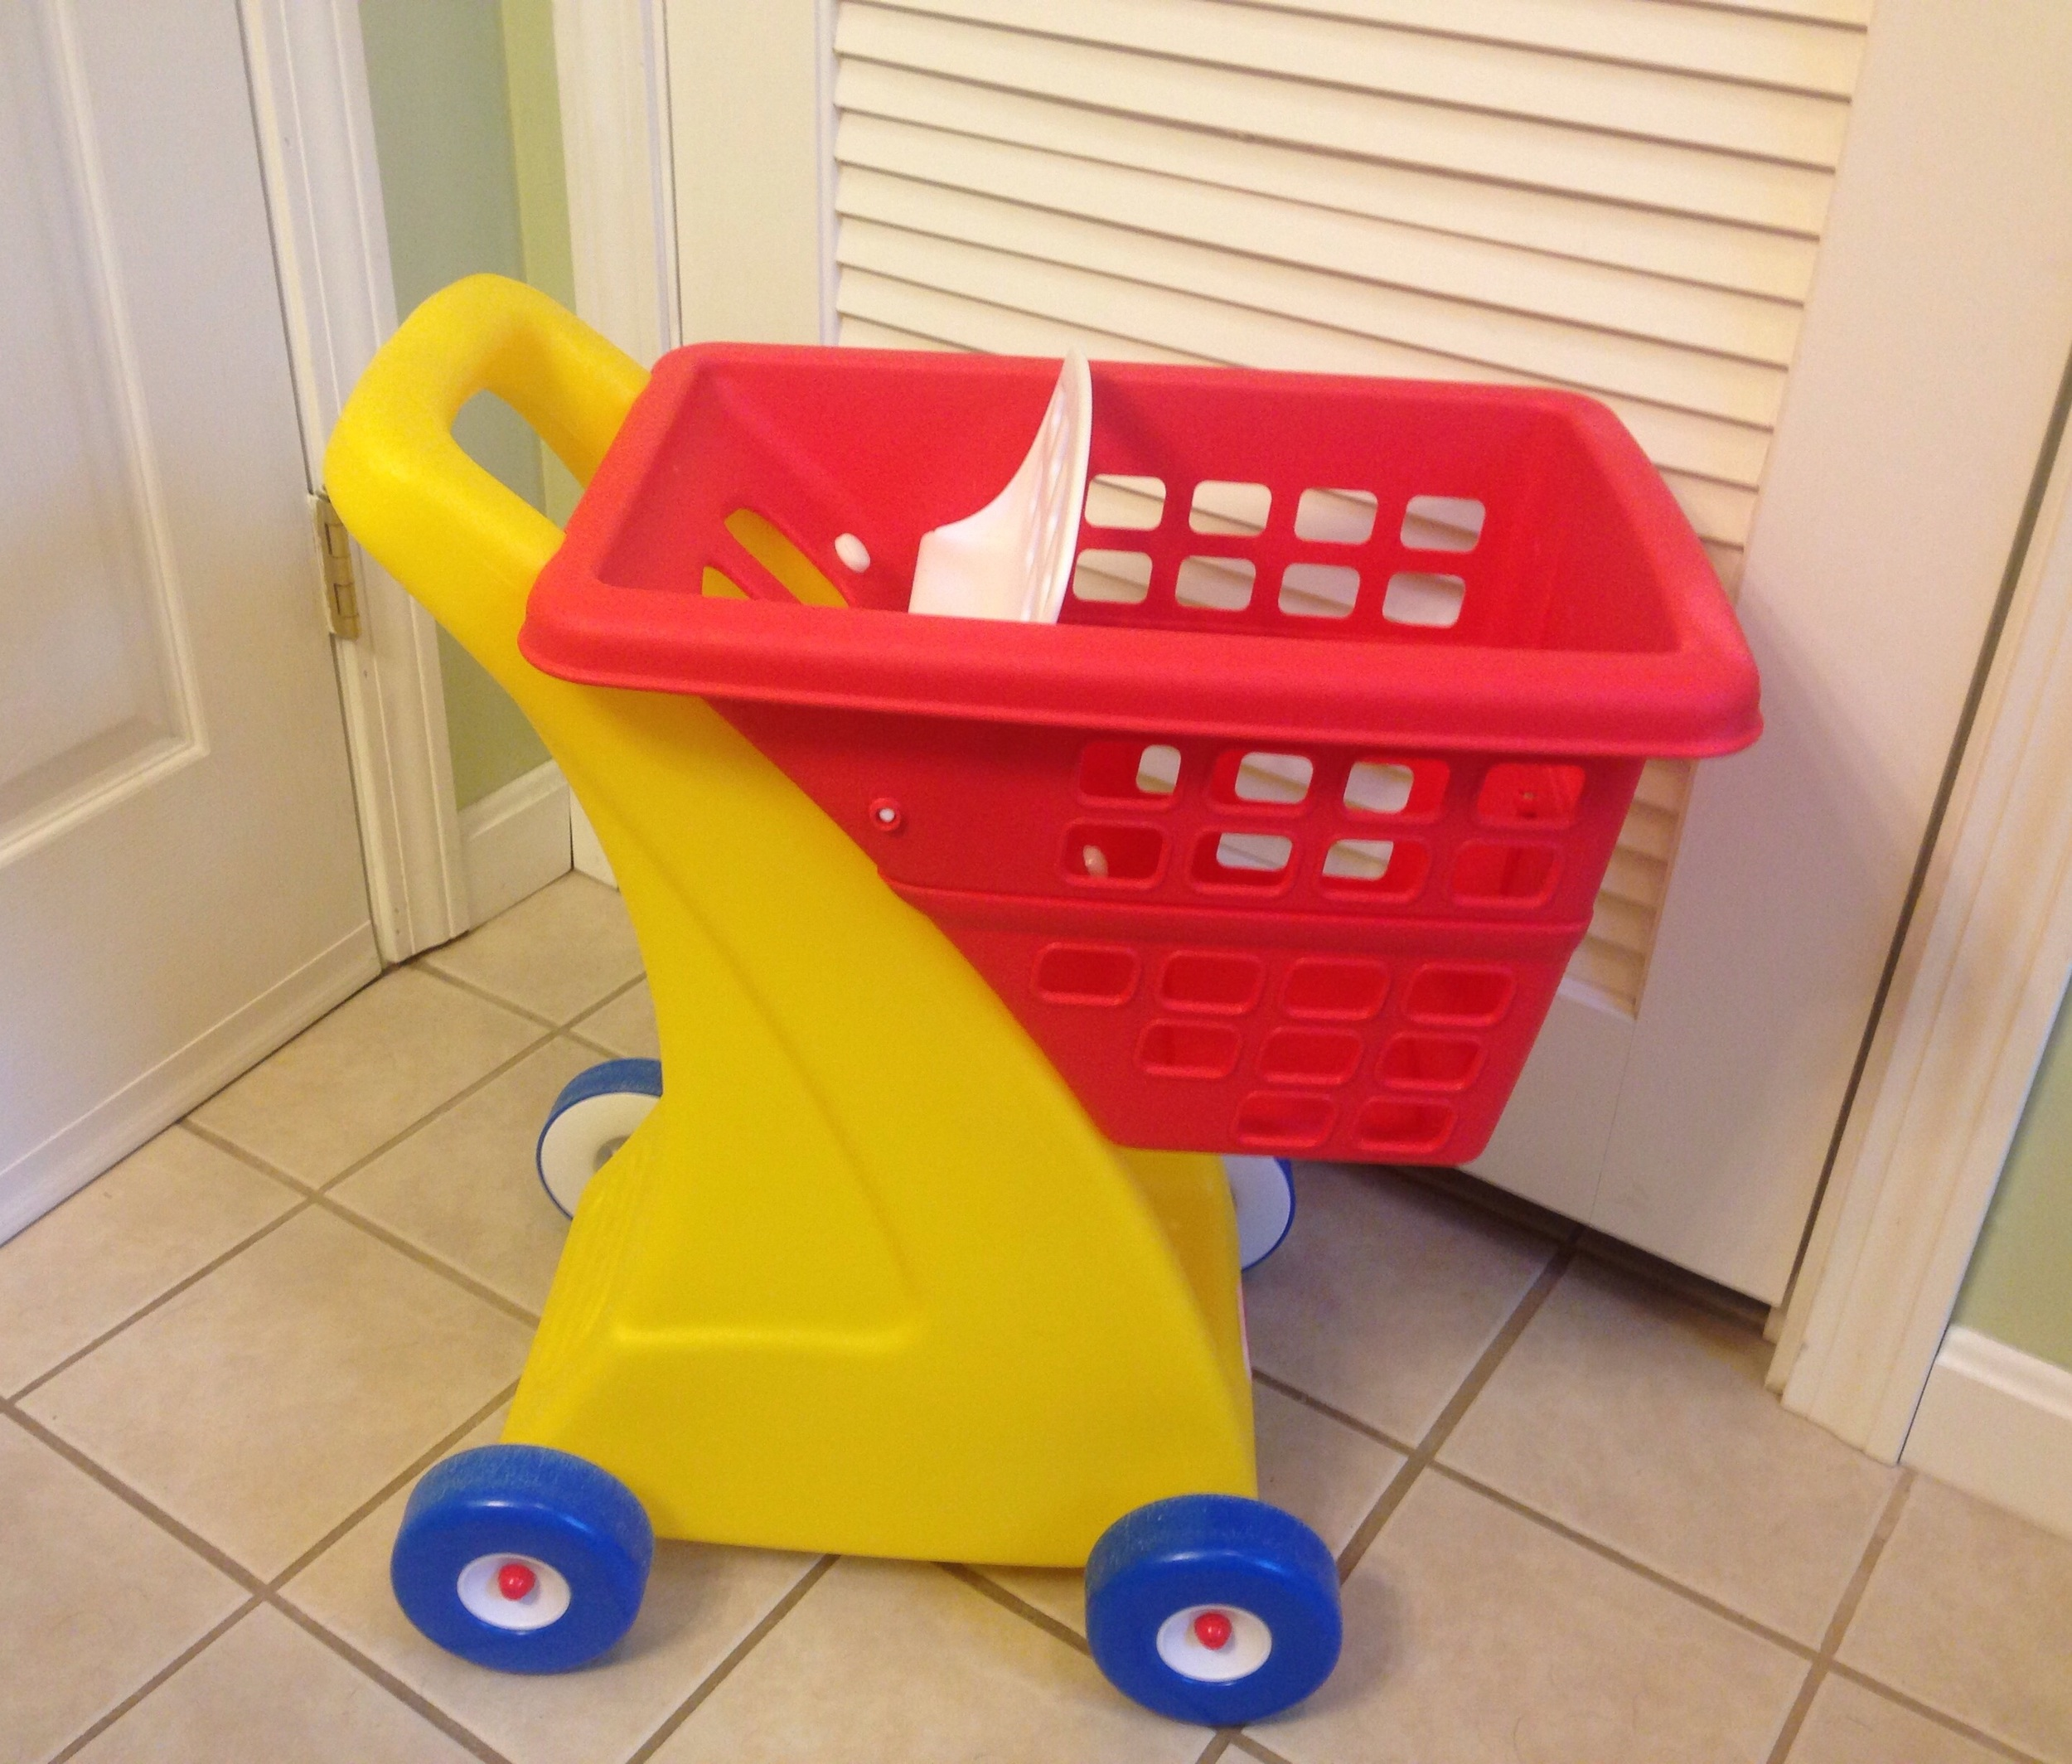 Free Little Tikes Shopping Cart from Pampers Rewards!